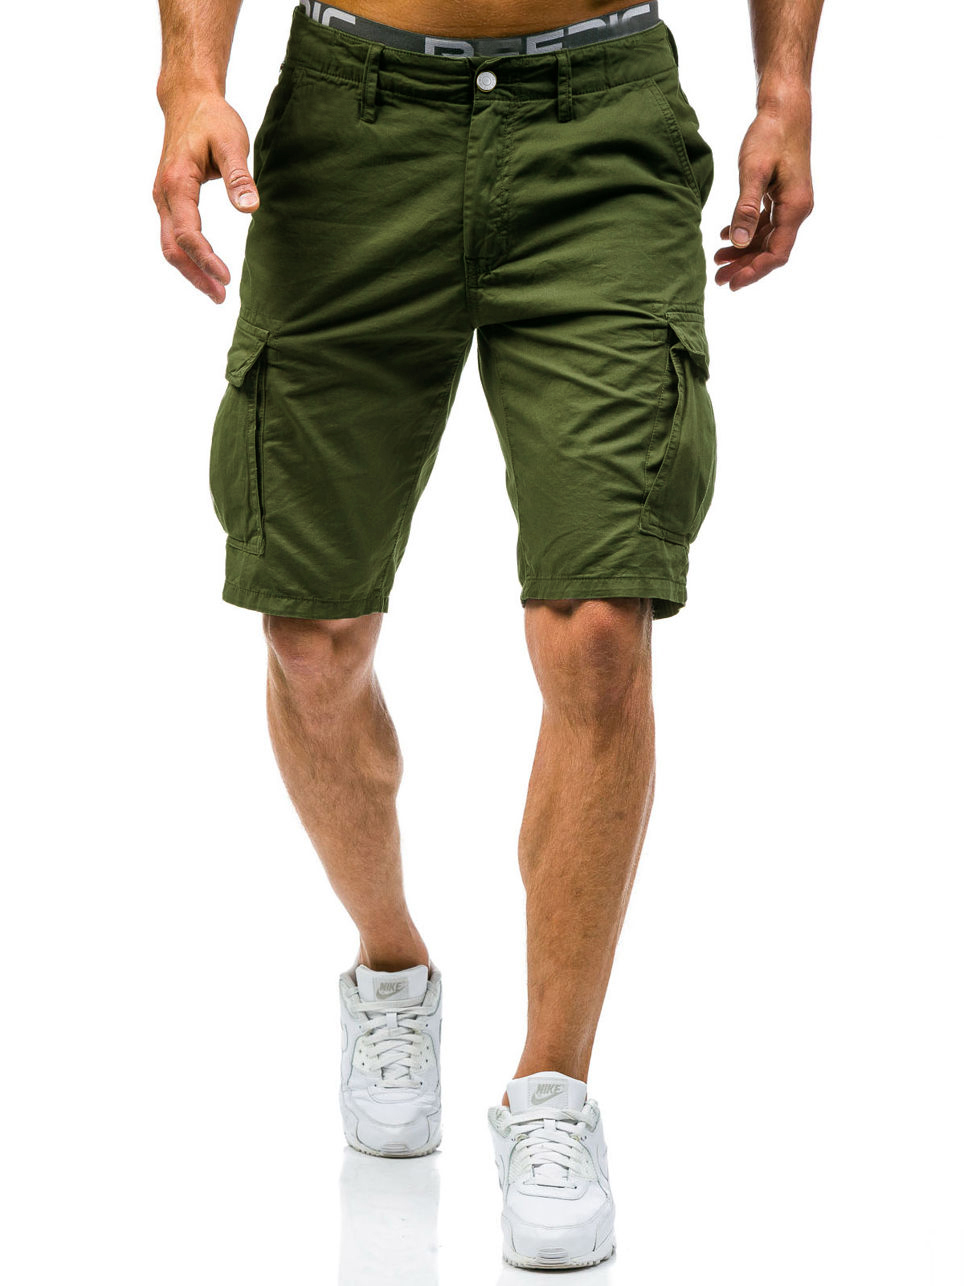 New 2018 Men Cargo Shorts Casual Loose Short Pants Camouflage Military Summer Style Knee Length 2 Colors Shorts Men